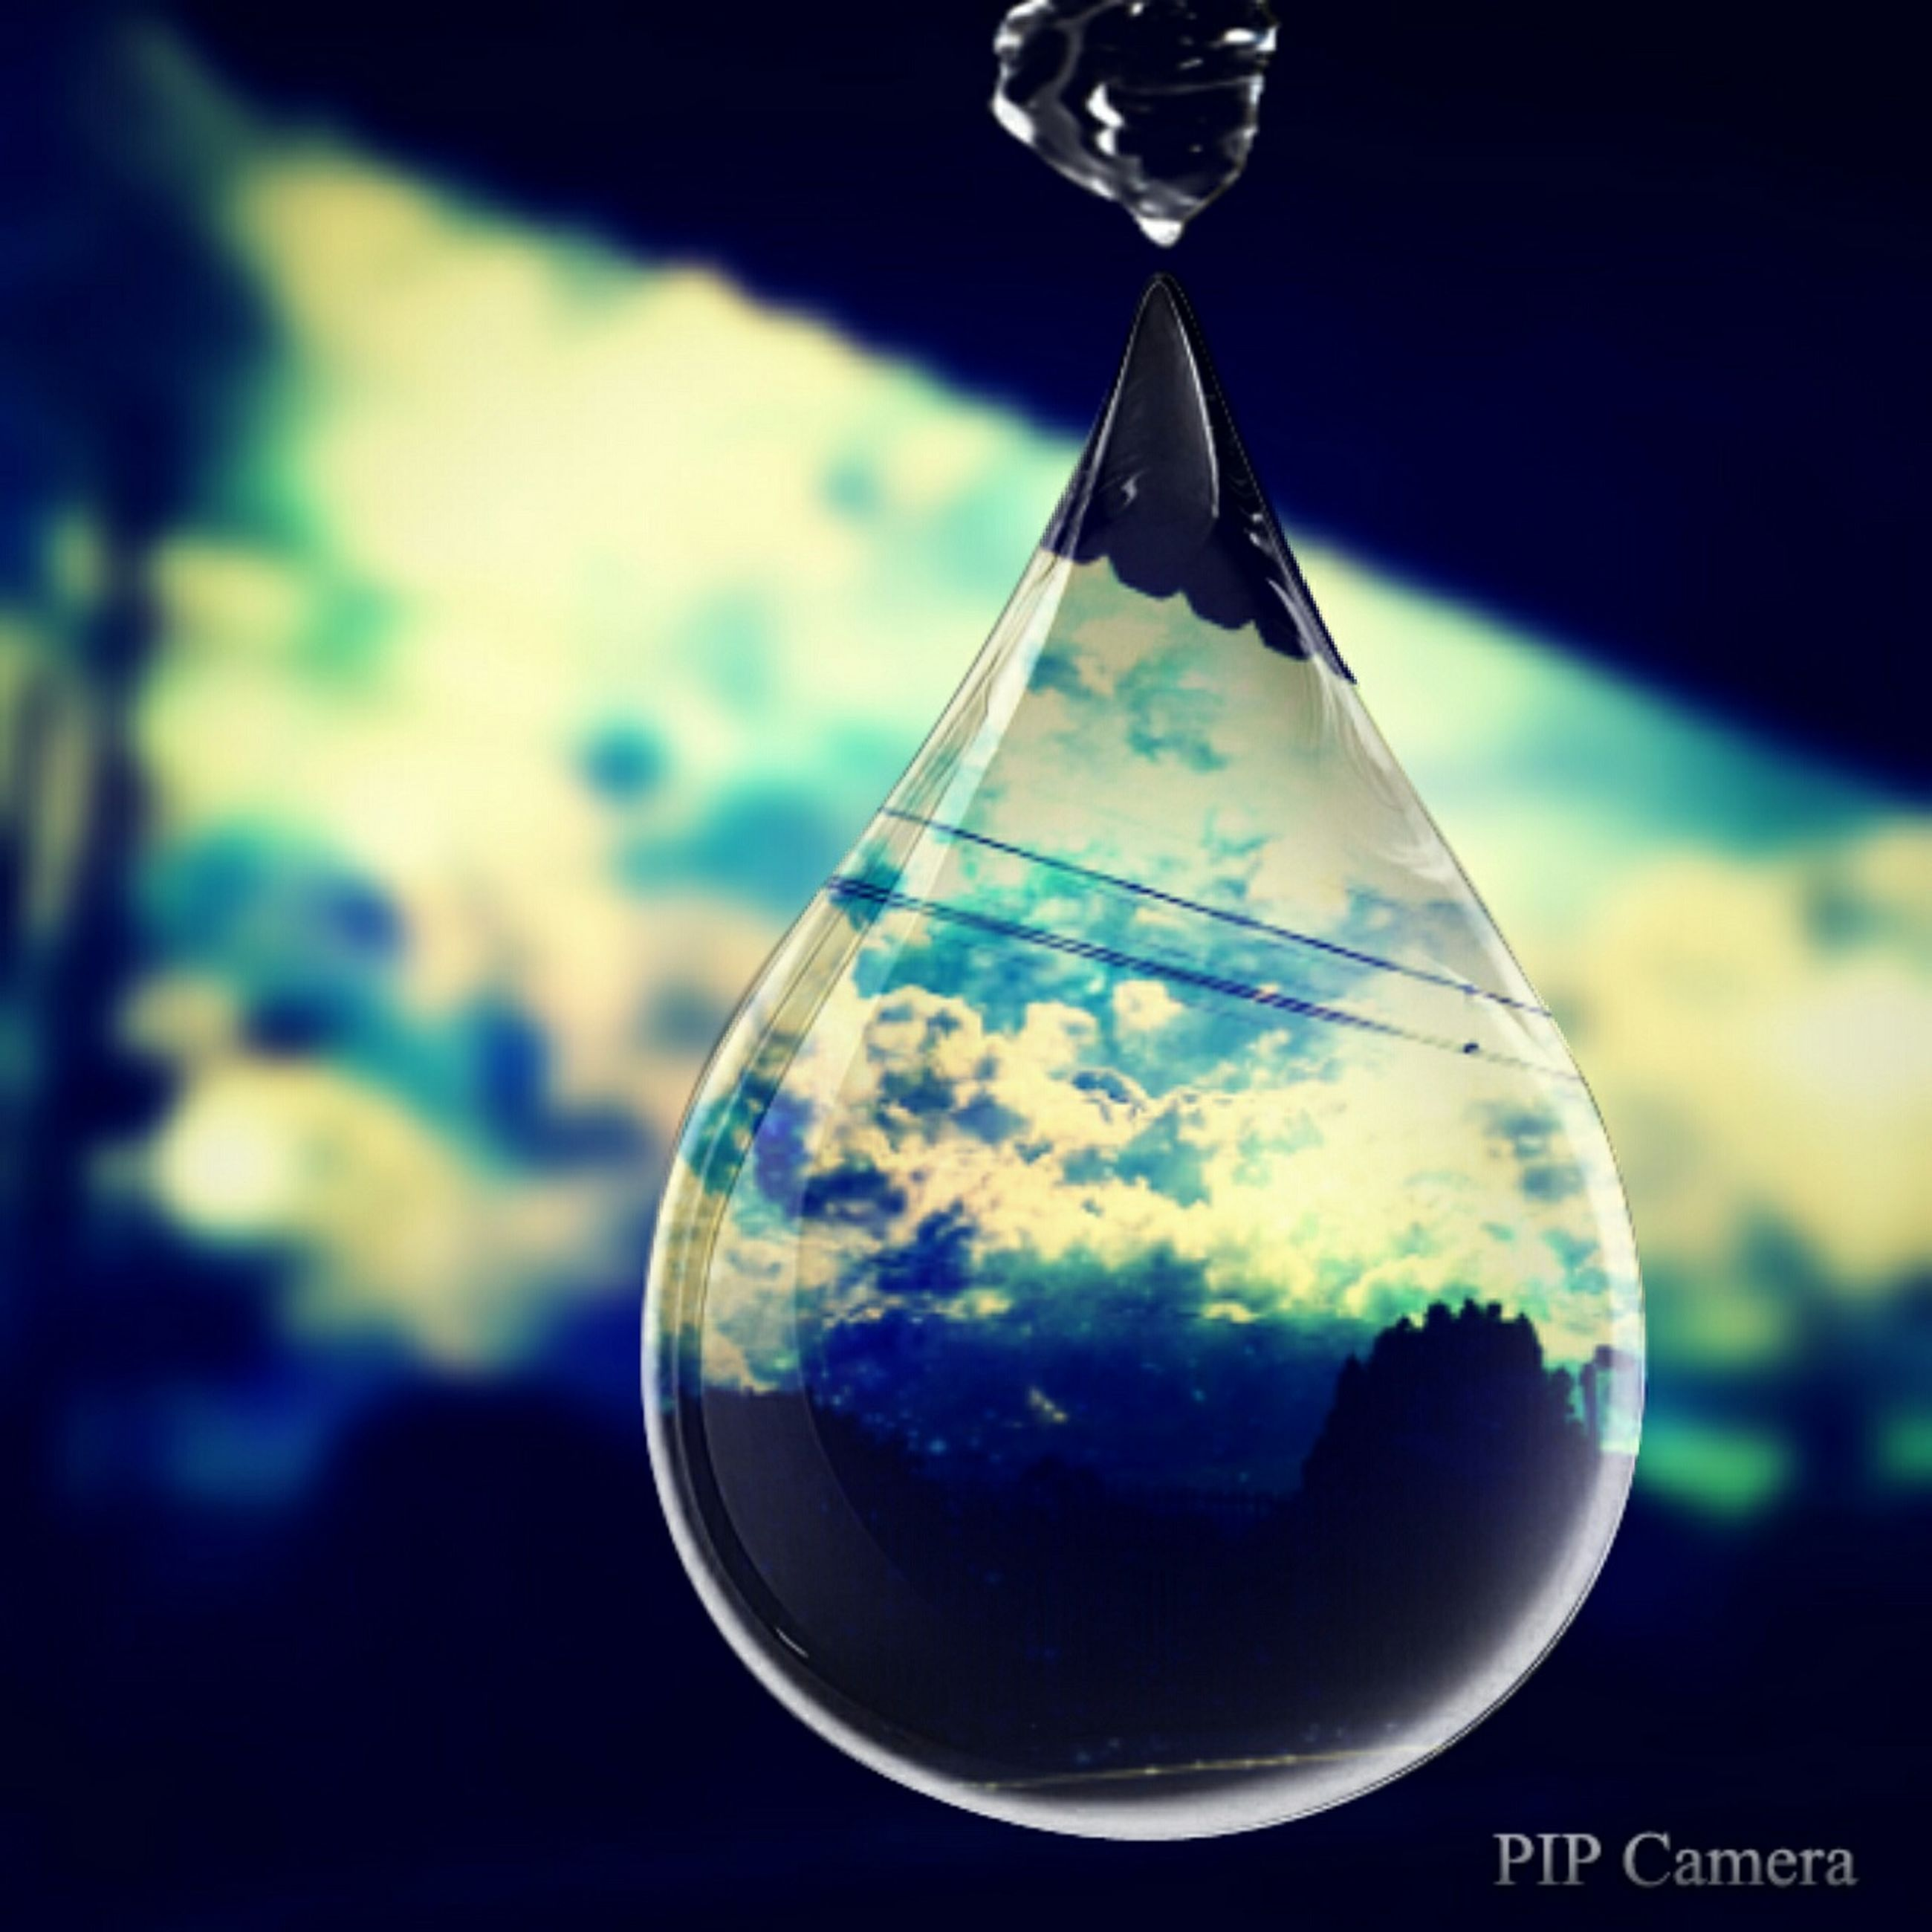 close-up, focus on foreground, blue, sphere, transparent, no people, selective focus, single object, glass - material, still life, part of, reflection, hanging, indoors, day, mid-air, circle, bubble, shape